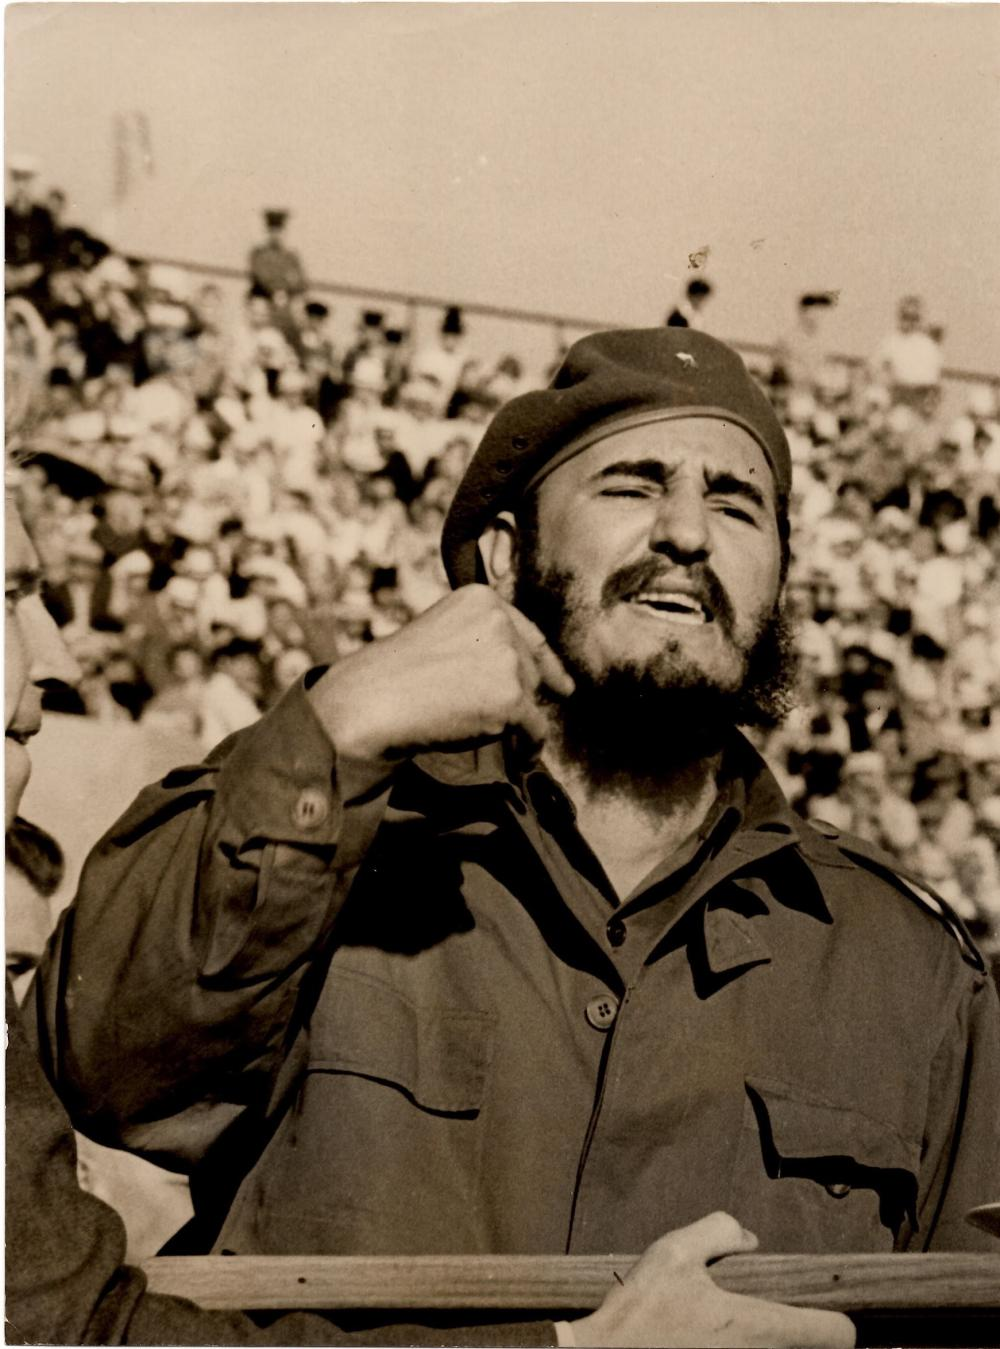 Three Vintage Photographs of the Cuban Revolutionary Fidel Castro